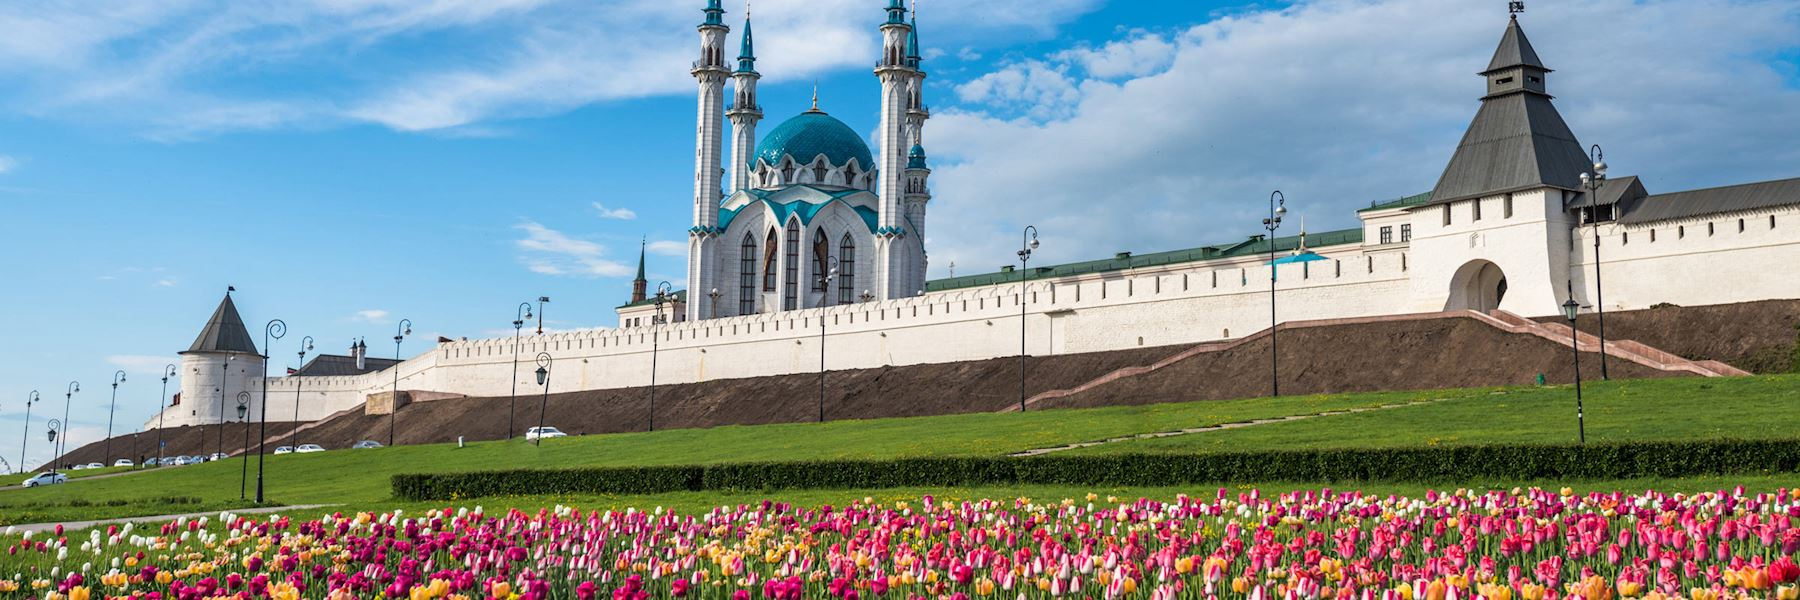 Visit Kazan on a trip to Russia | Audley Travel on markovo russia map, bashkiria russia map, yaroslavl russia map, vladivostok map, grozny russia map, ufa russia map, novgorod russia map, yurga russia map, moscow map, elista russia map, warsaw russia map, crimea russia map, tatarstan russia map, irkutsk map, tula russia map, samara russia map, serpukhov russia map, astrakhan russia map, tynda russia map, volsk russia map,